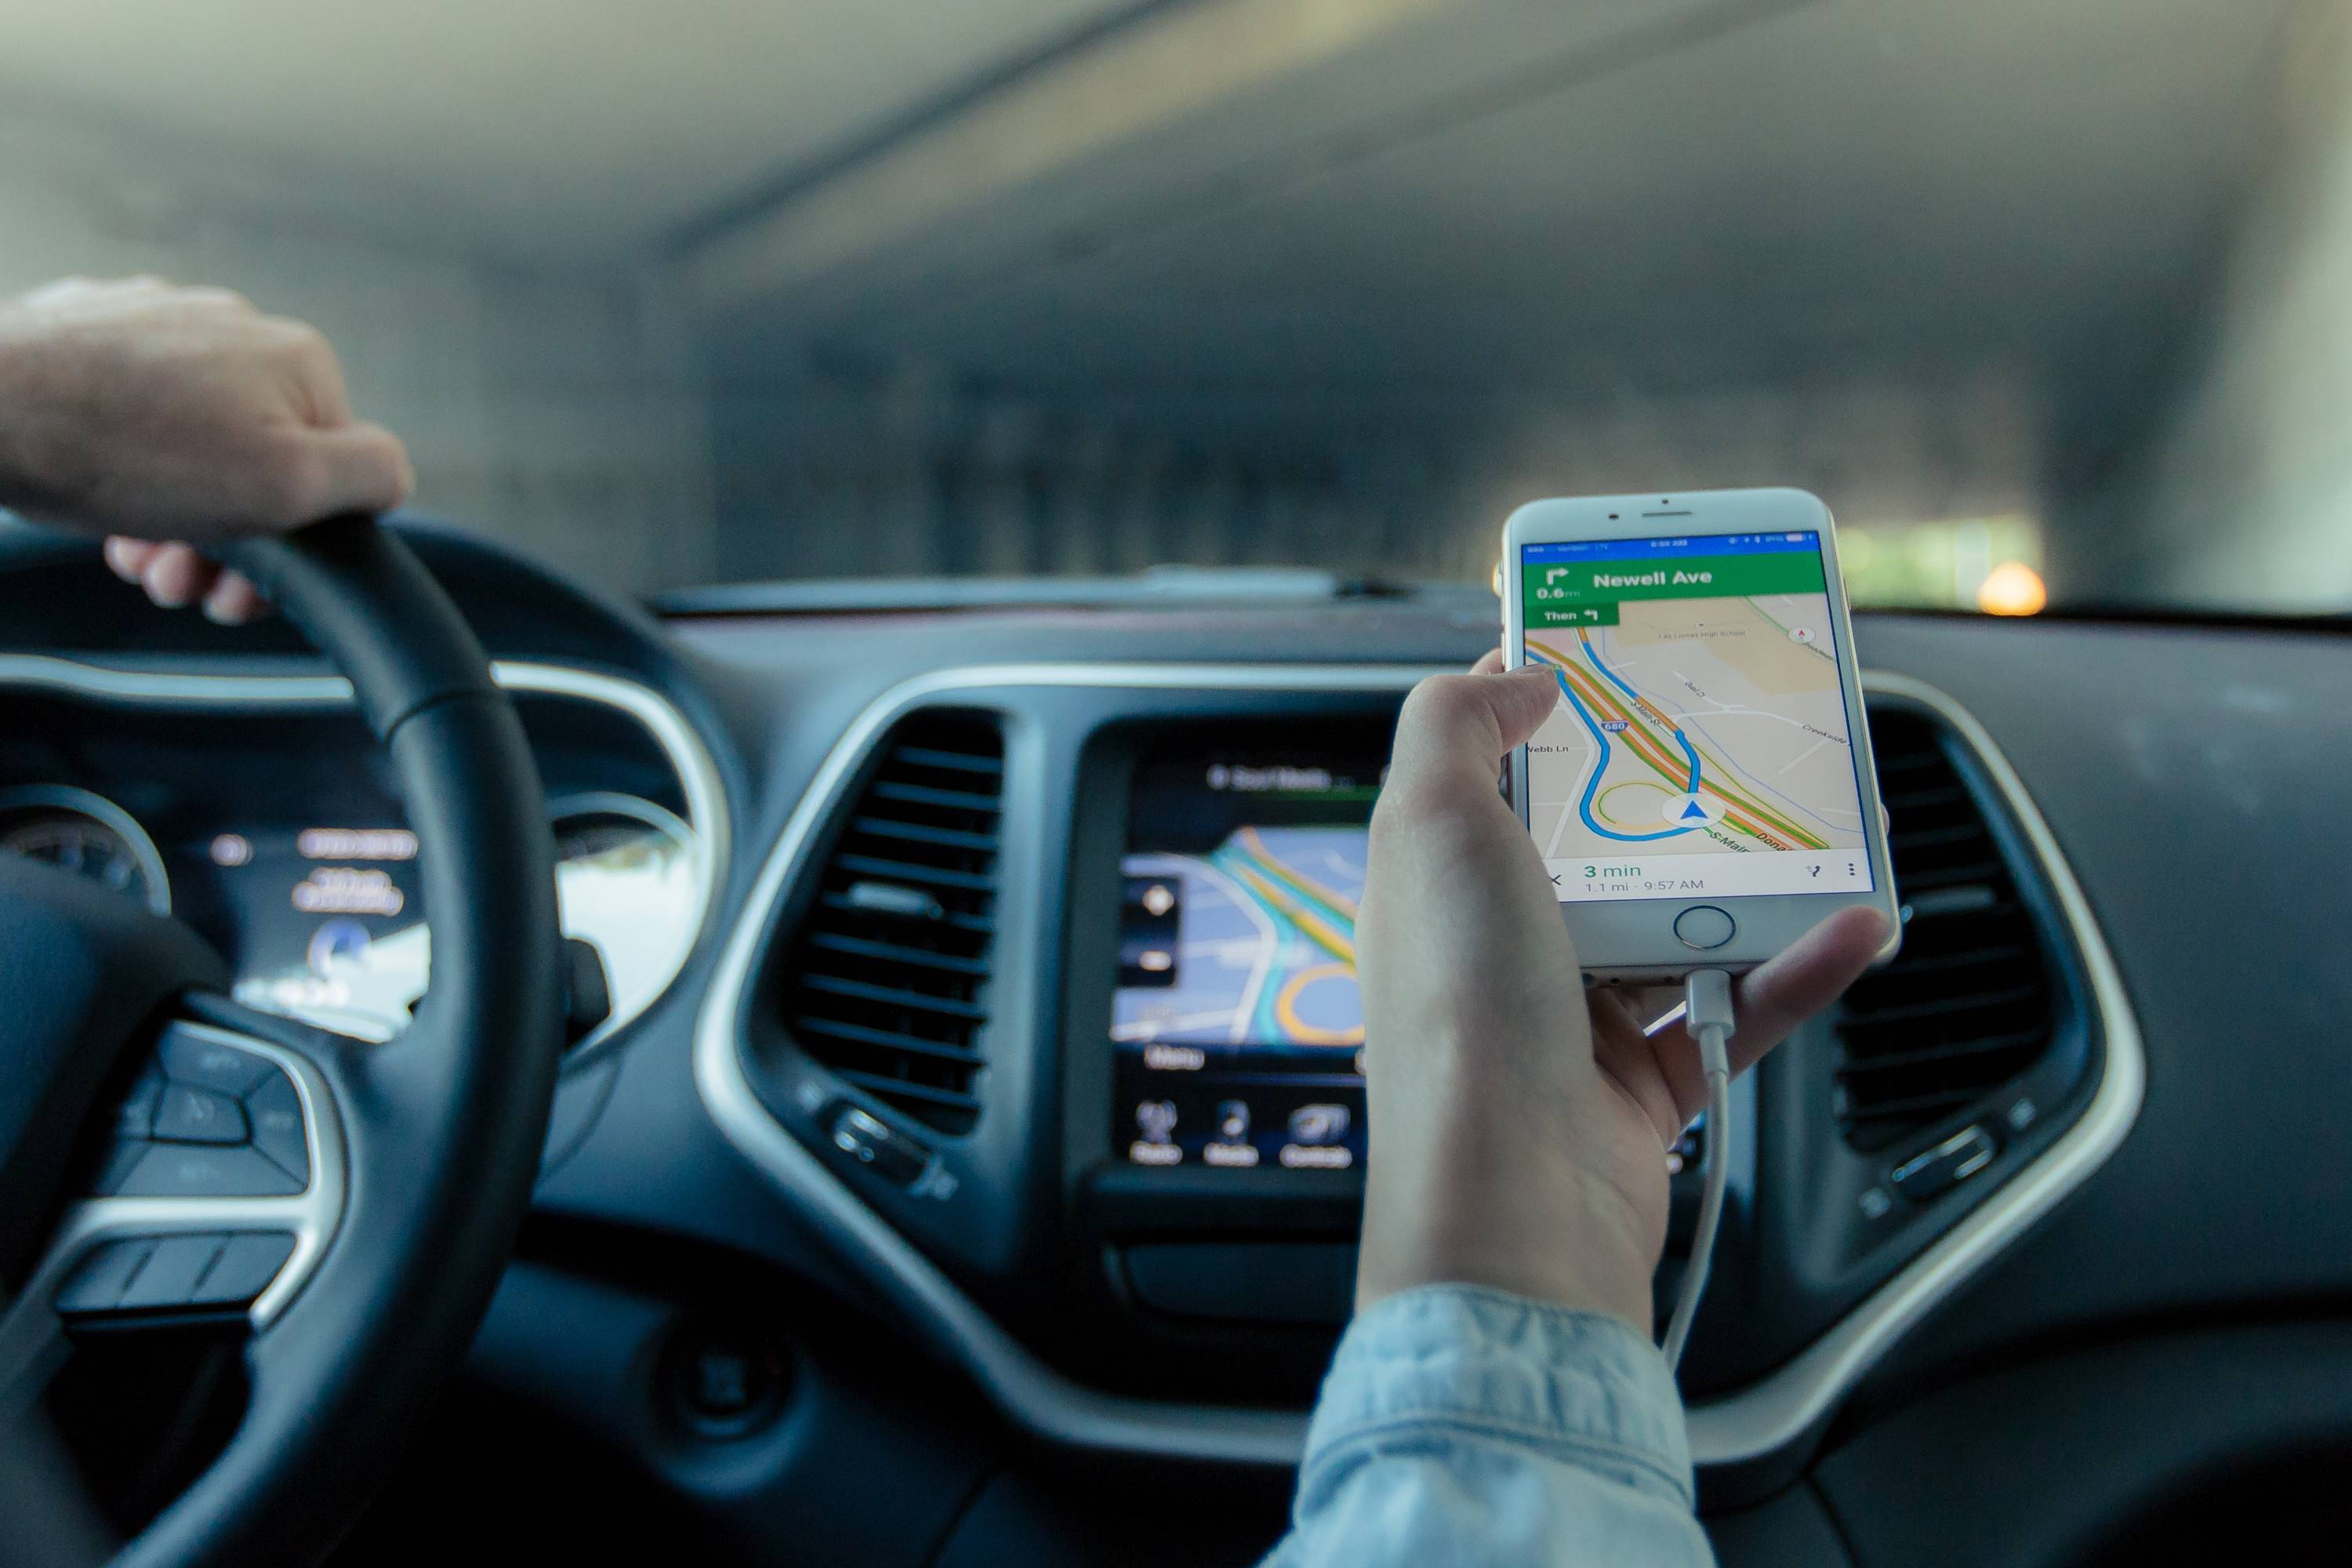 apple maps on iphone passenger navigating driver - Protect Your IPO